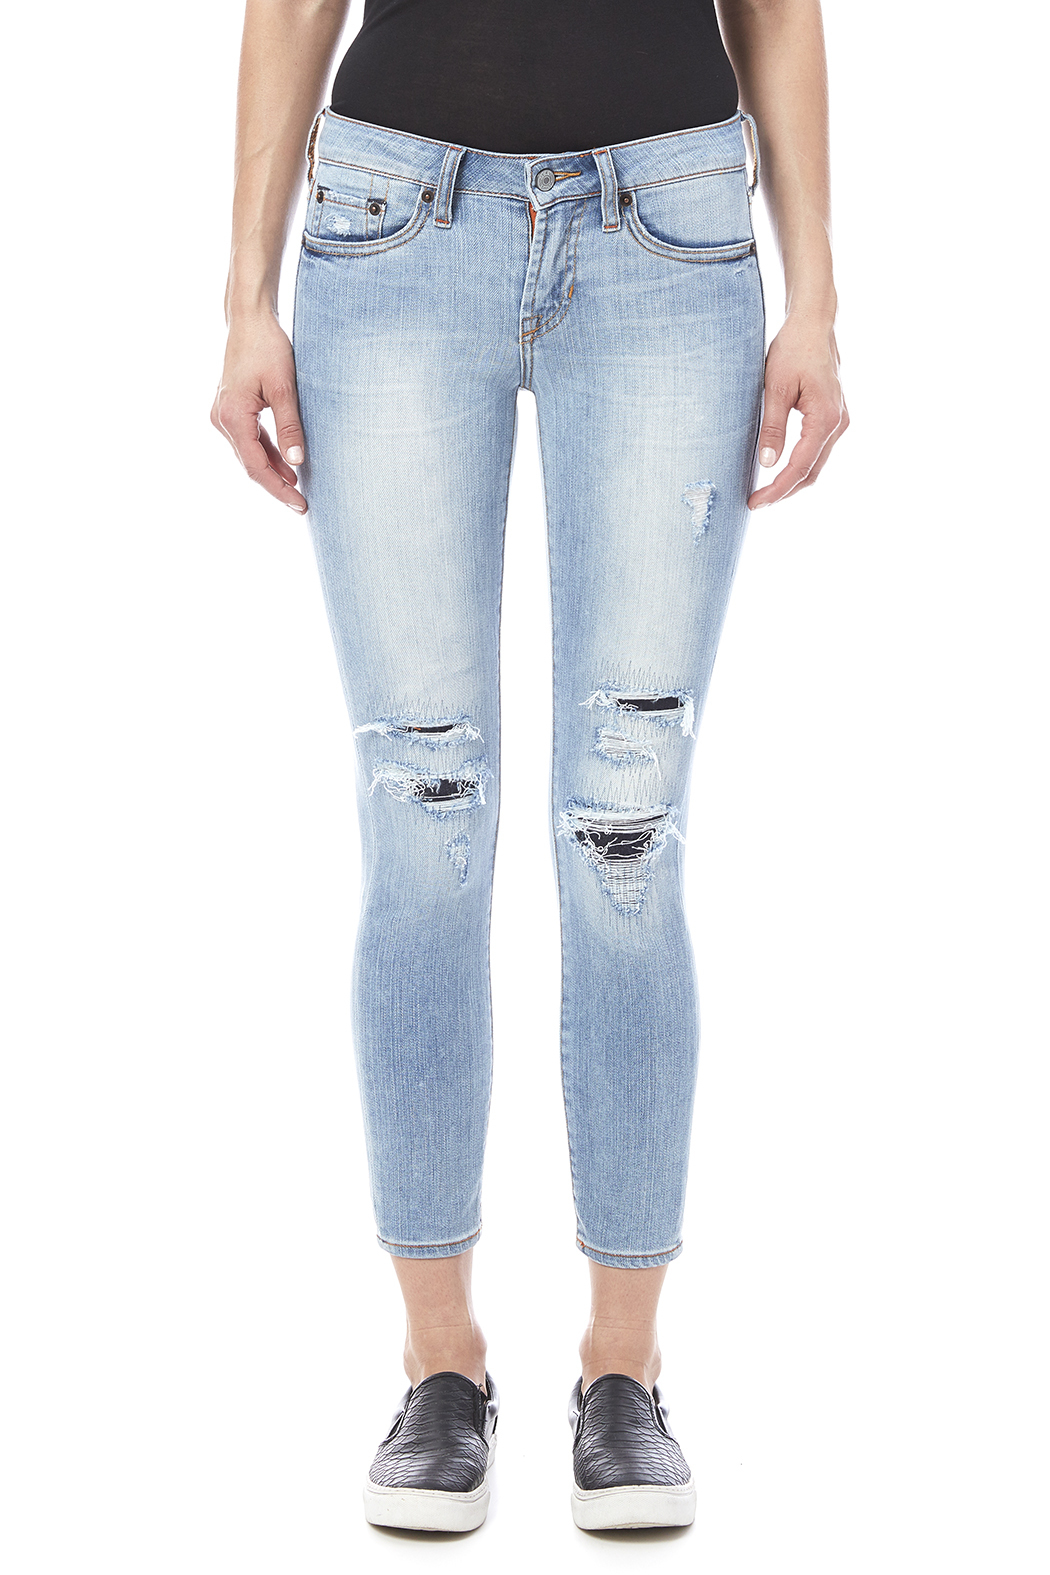 Jean Shop Patty Destroyed Jeans - Side Cropped Image